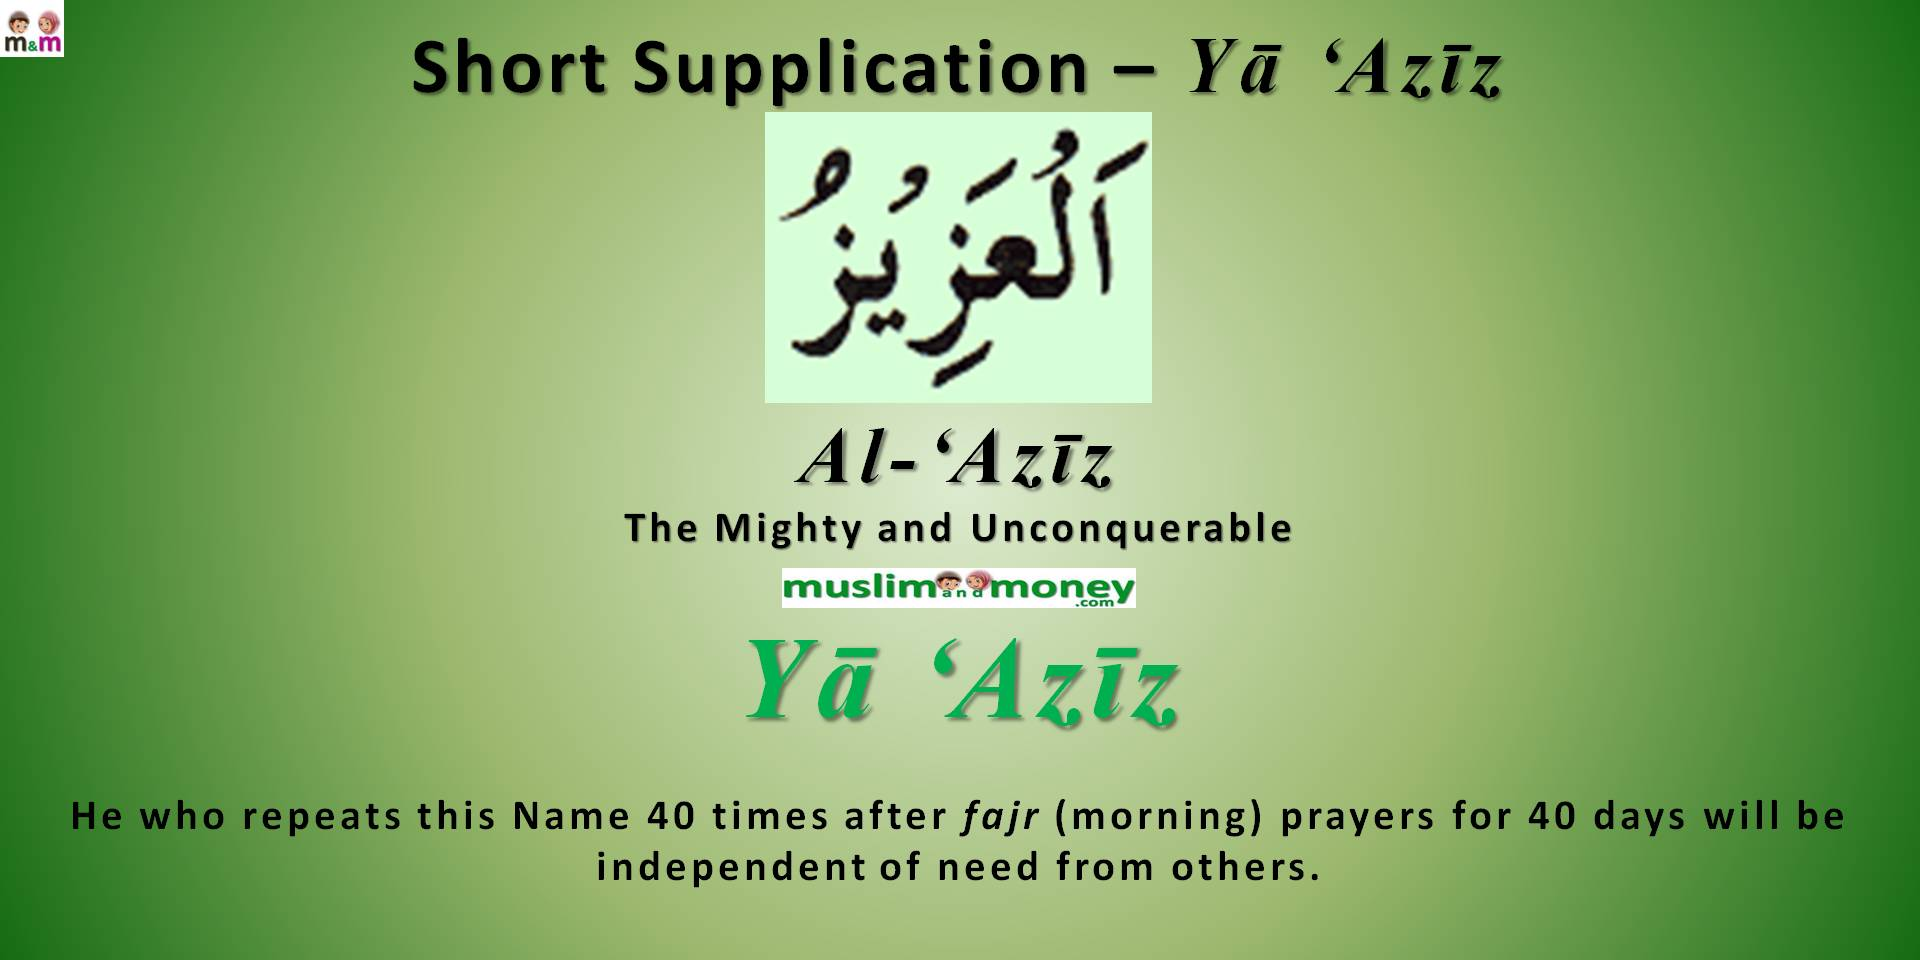 Muslim prayer muslim and money mminfographics06 duayaaziz altavistaventures Image collections